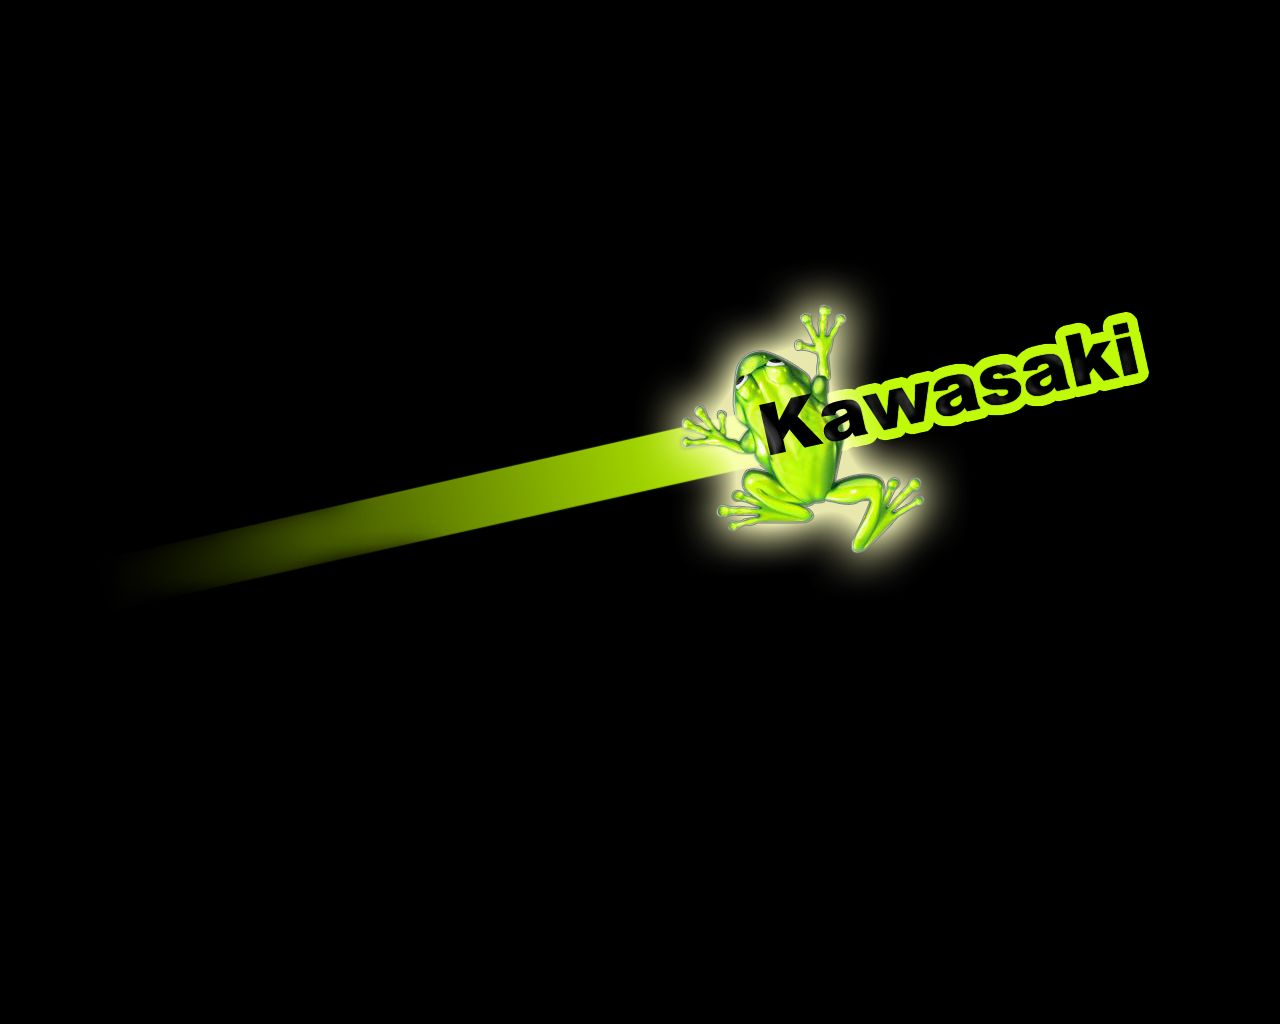 Kawasaki Logo Wallpaper